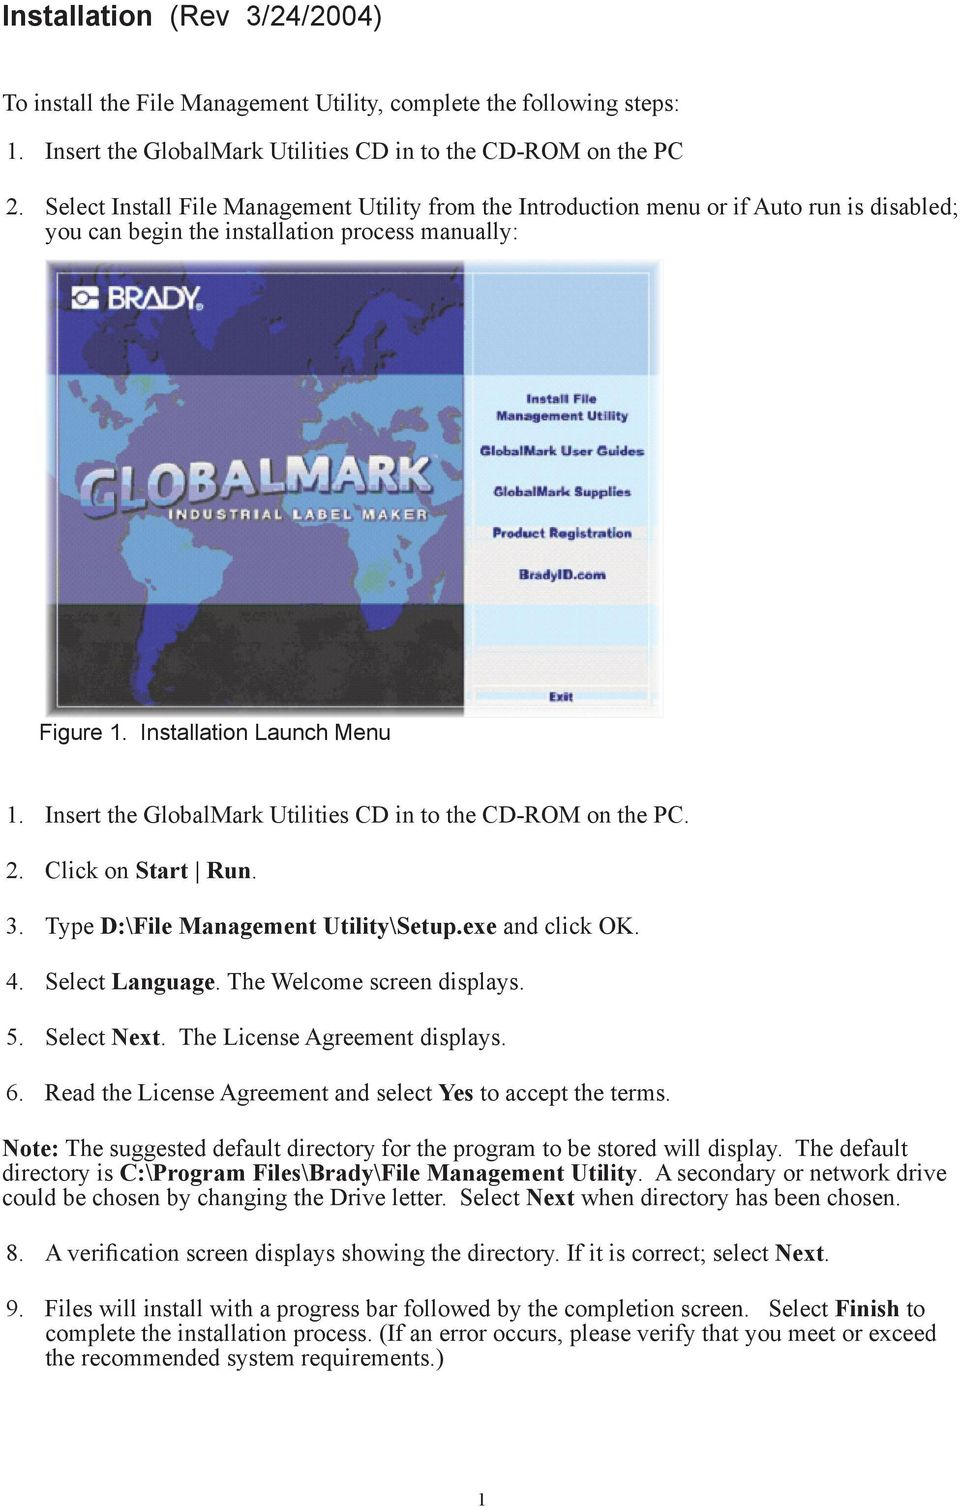 Insert the GlobalMark Utilities CD in to the CD-ROM on the PC. 2. Click on Start Run. 3. Type D:\File Management Utility\Setup.exe and click OK. 4. Select Language. The Welcome screen displays. 5.